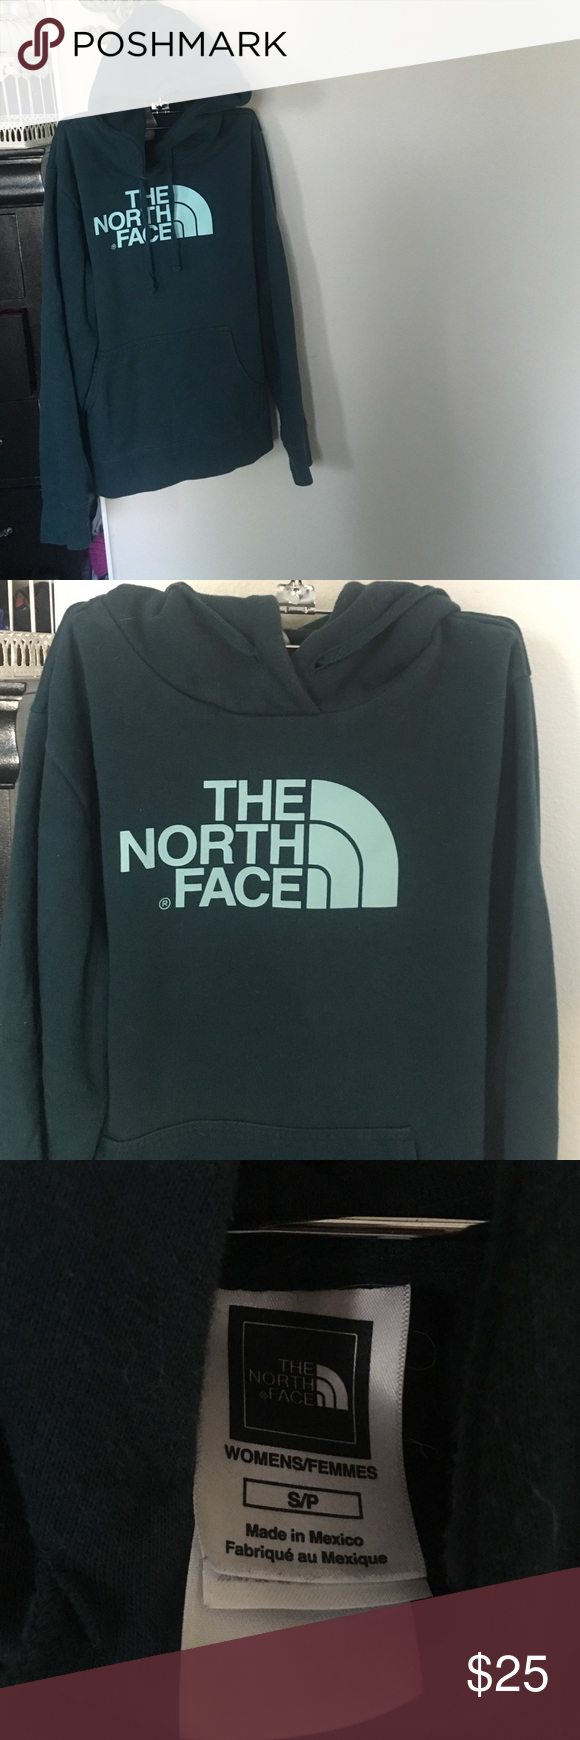 """The North Face Hoodie Size small. Easy pull over hoodie. Dark teal/turquoise color with lighter lettering of """"The North Face"""" worn once. The North Face Tops Sweatshirts & Hoodies"""